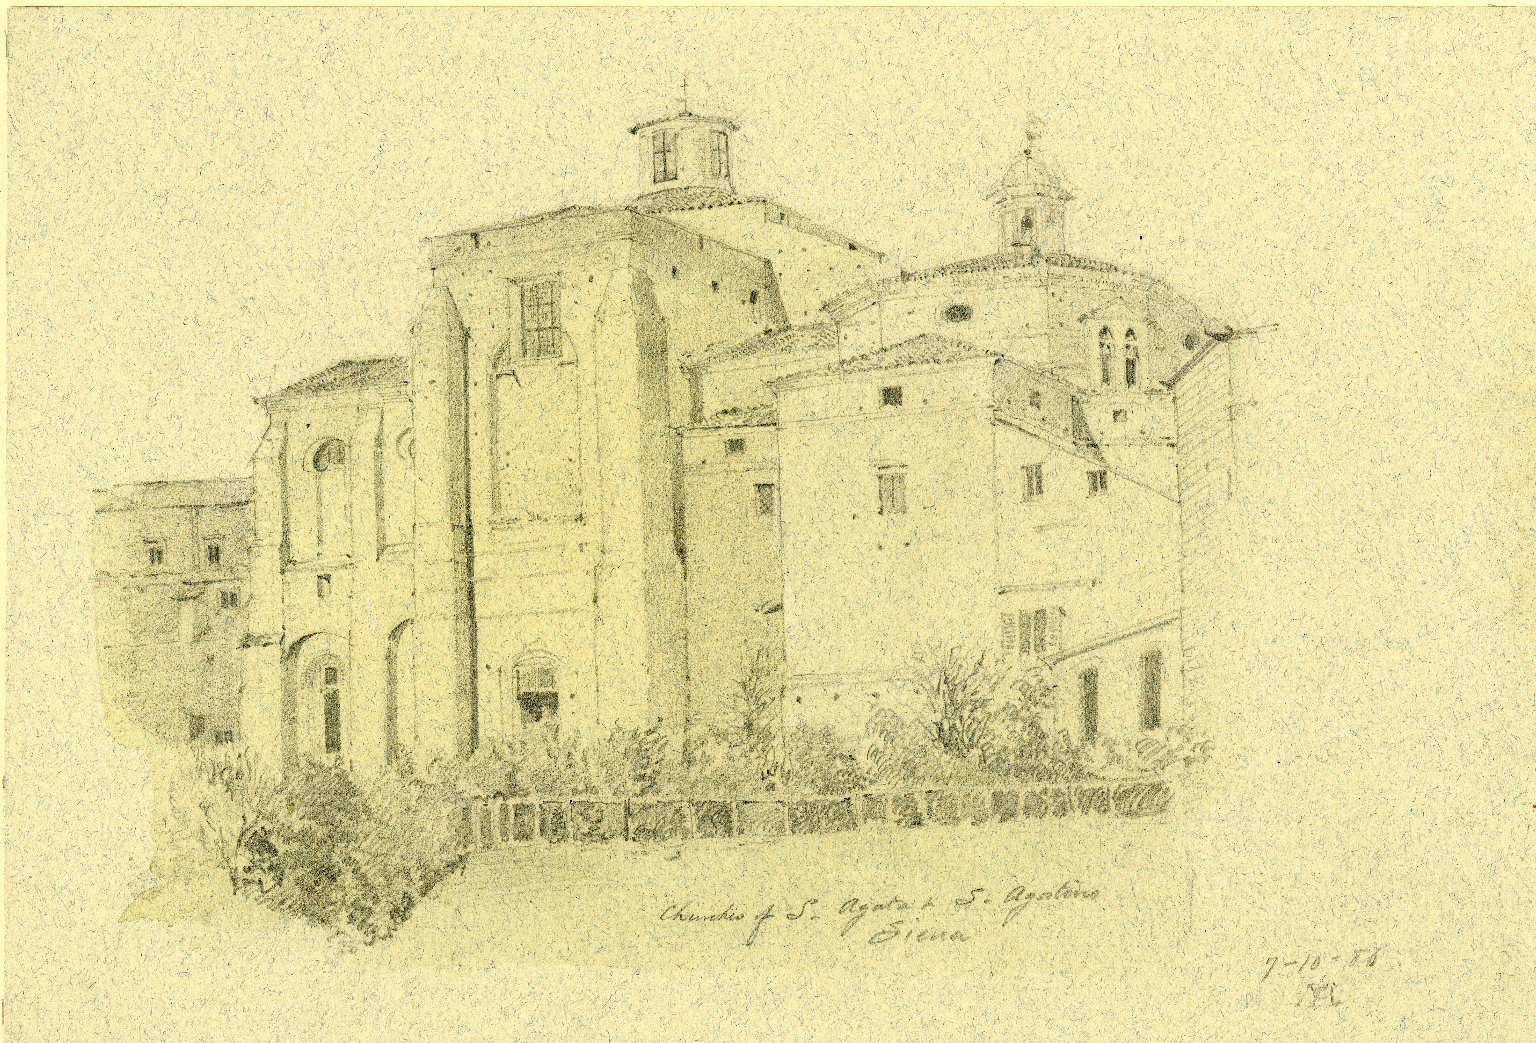 Sant'Agostino and Sant'Agata churches